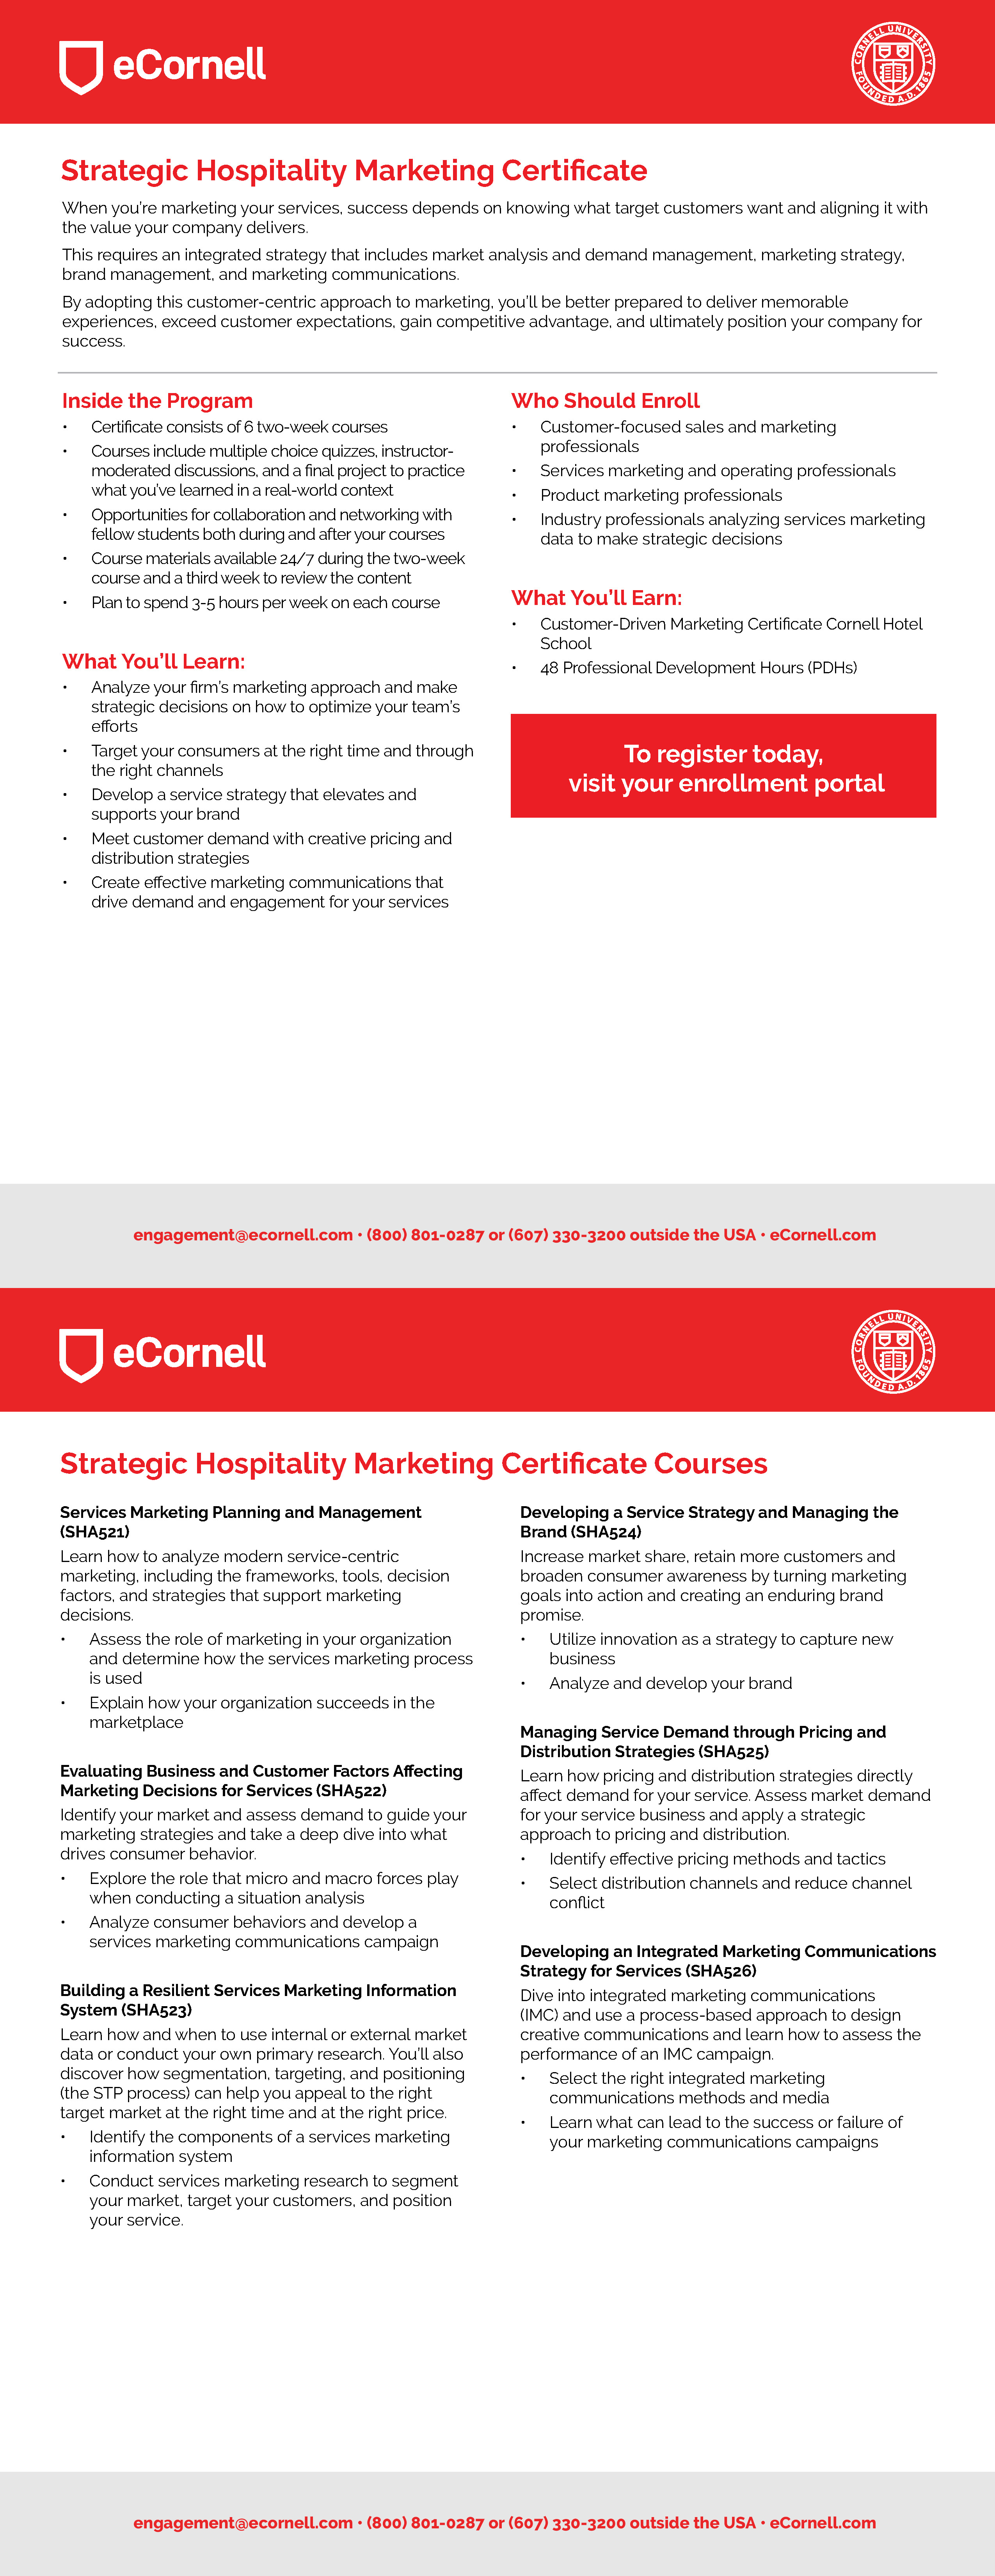 Customer-Driven Marketing Flyer for Corporations